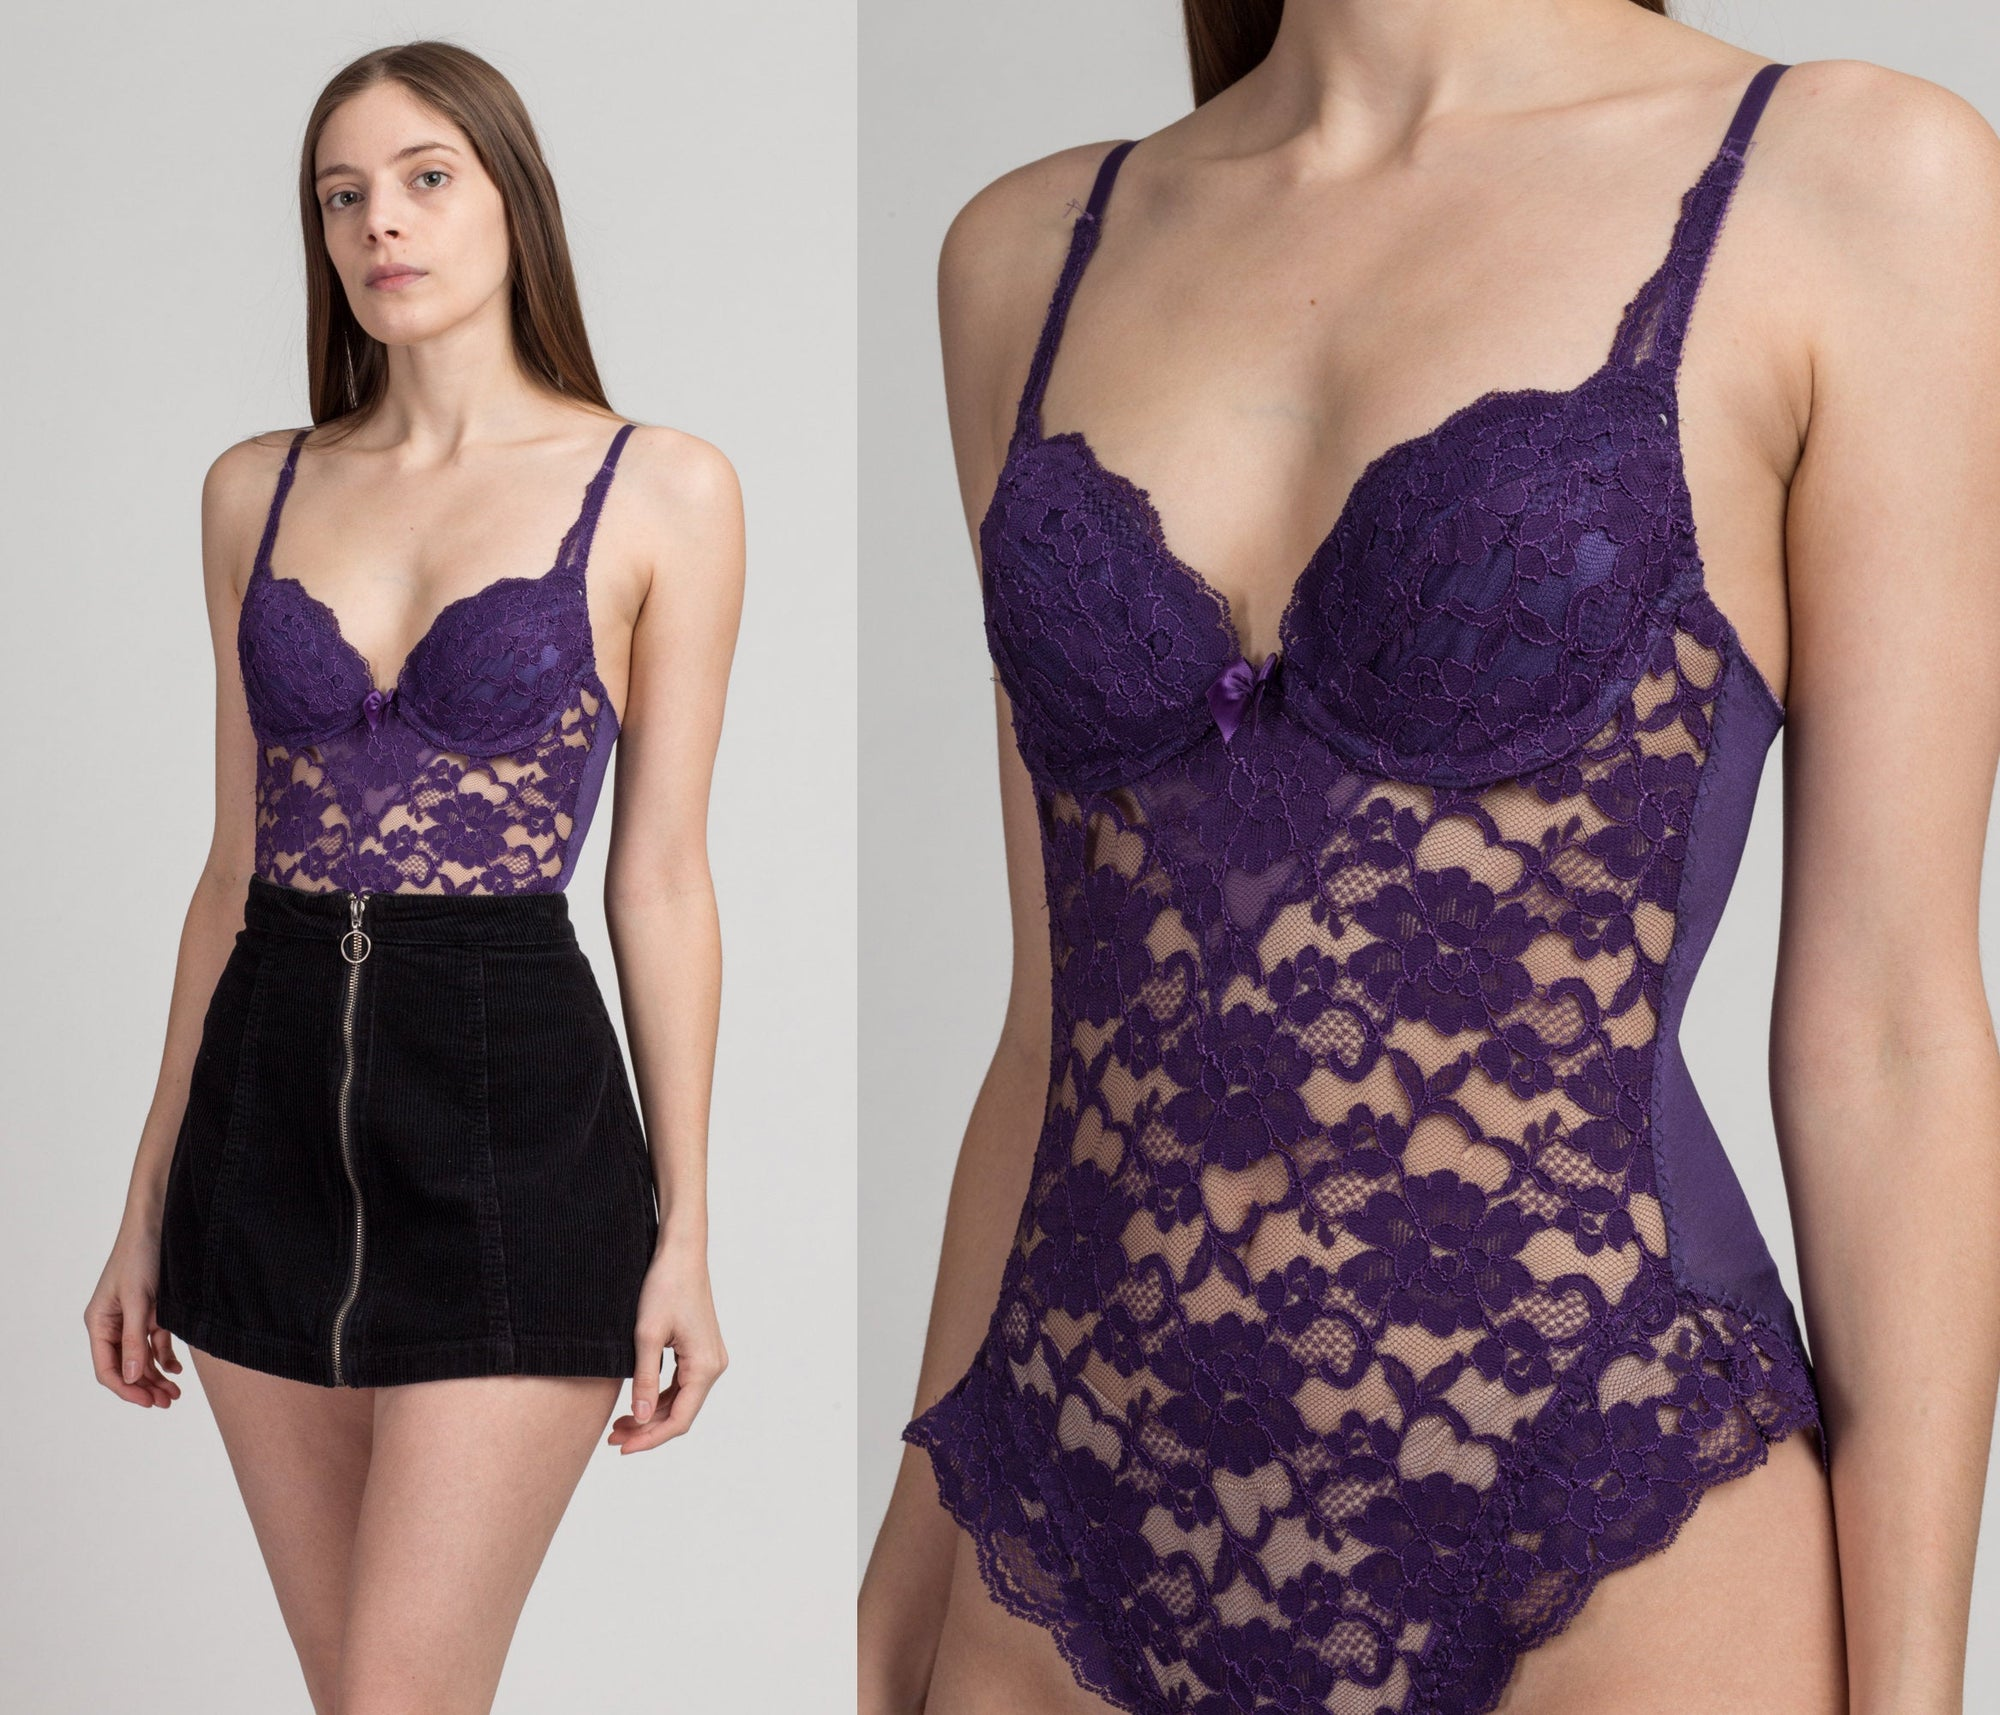 Vintage Lily Of France Purple Lace Bodysuit - 34B | 80s Underwire Lingerie Teddy Top